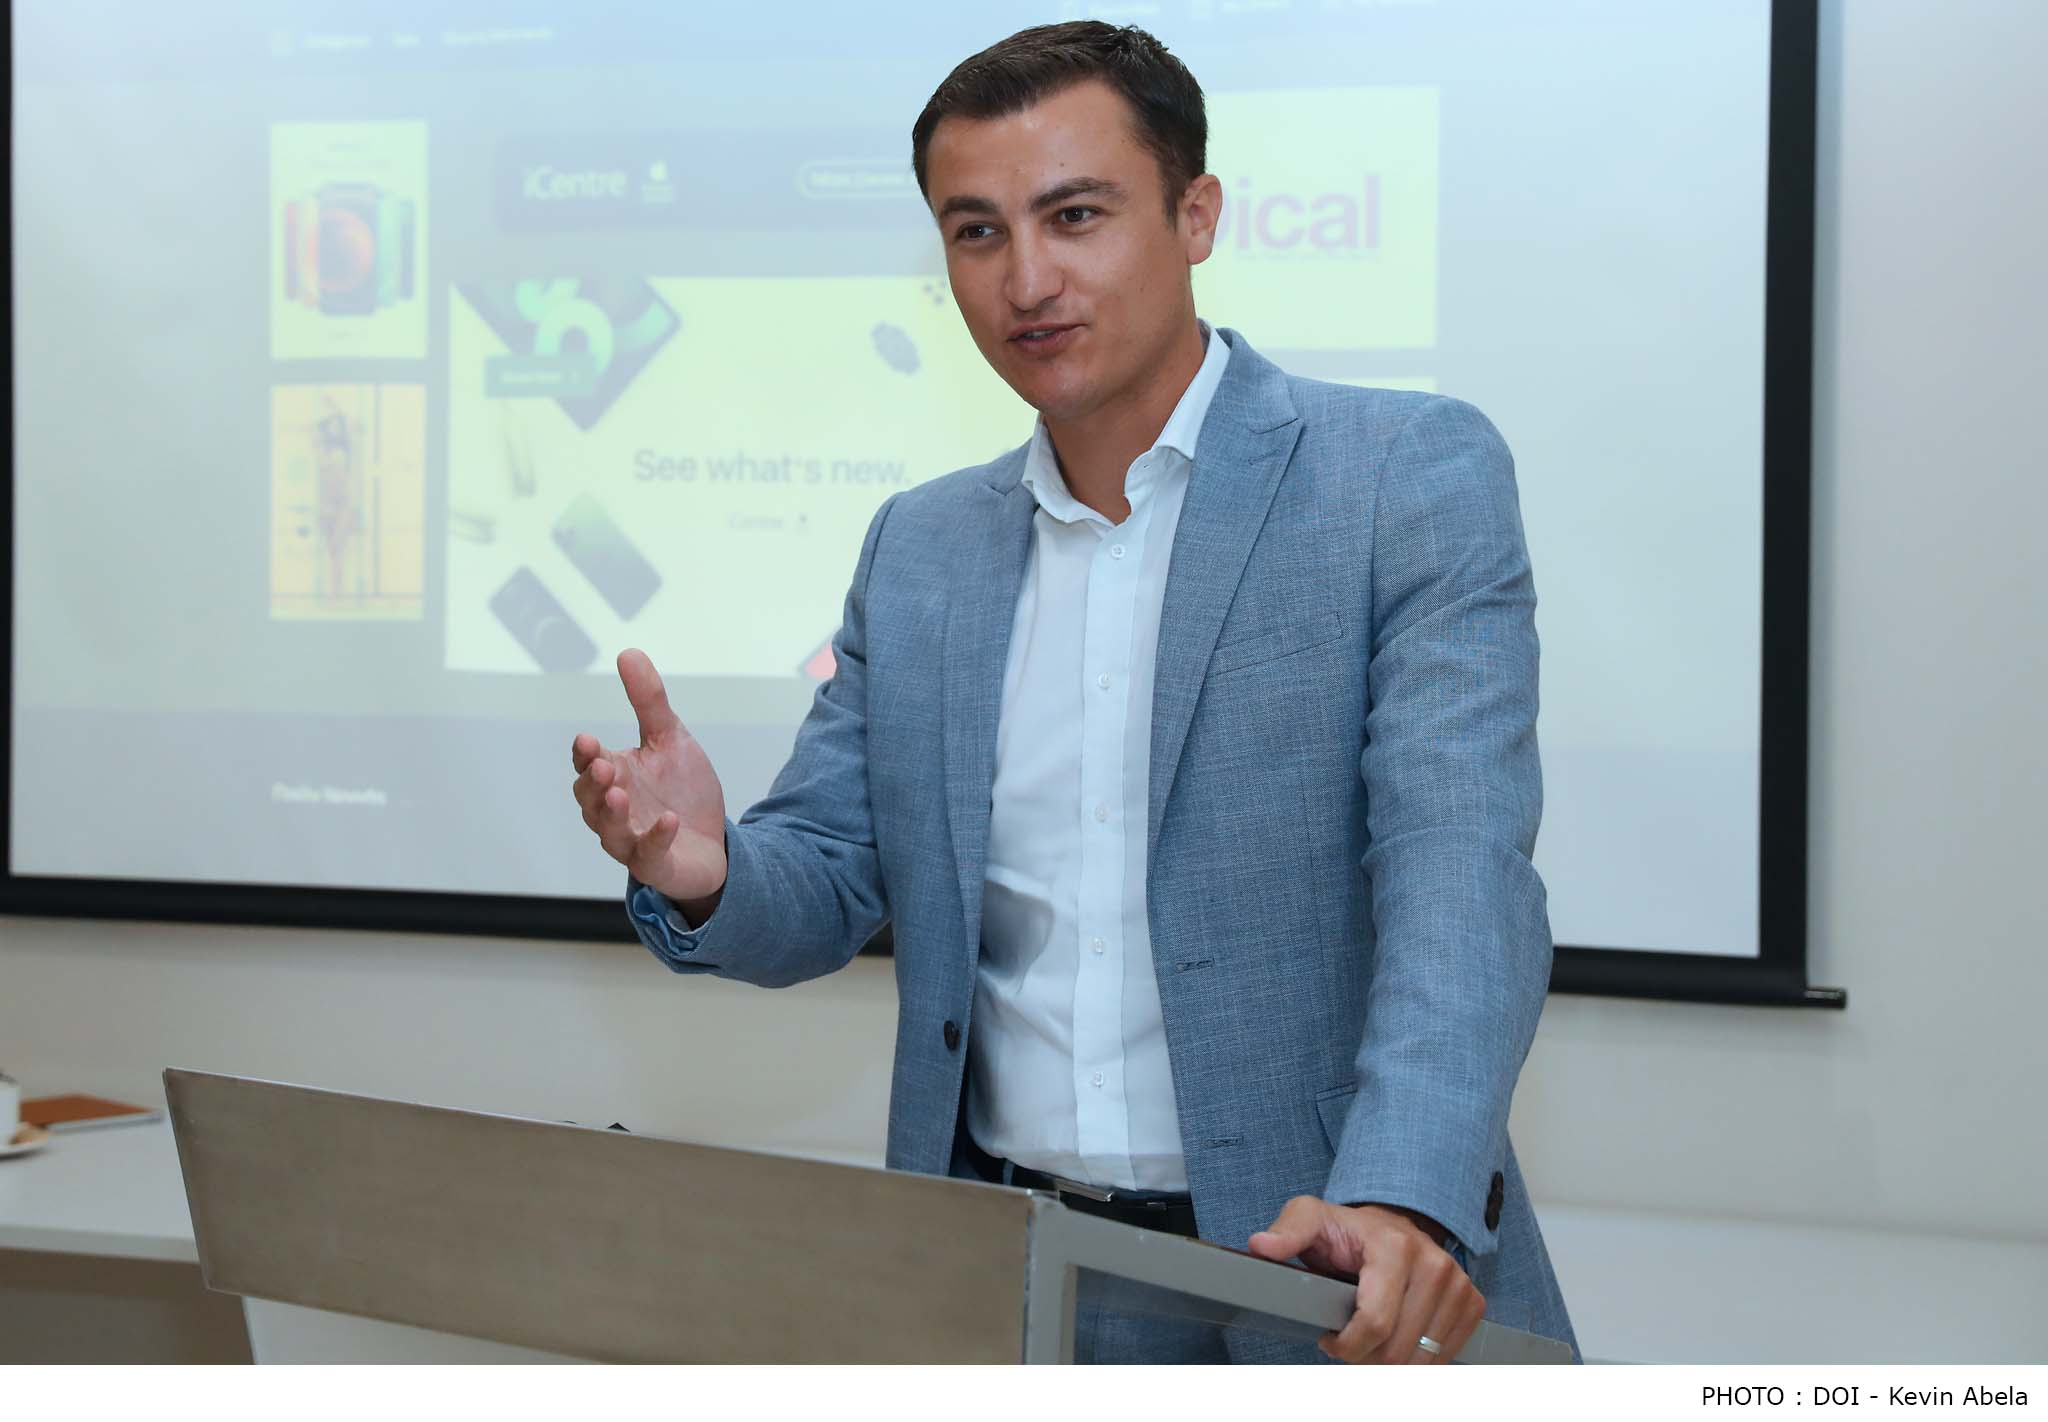 PRESS RELEASE BY THE MINISTRY FOR THE ECONOMY AND INDUSTRY: Launch of okmalta.com – a local online shopping digital platform